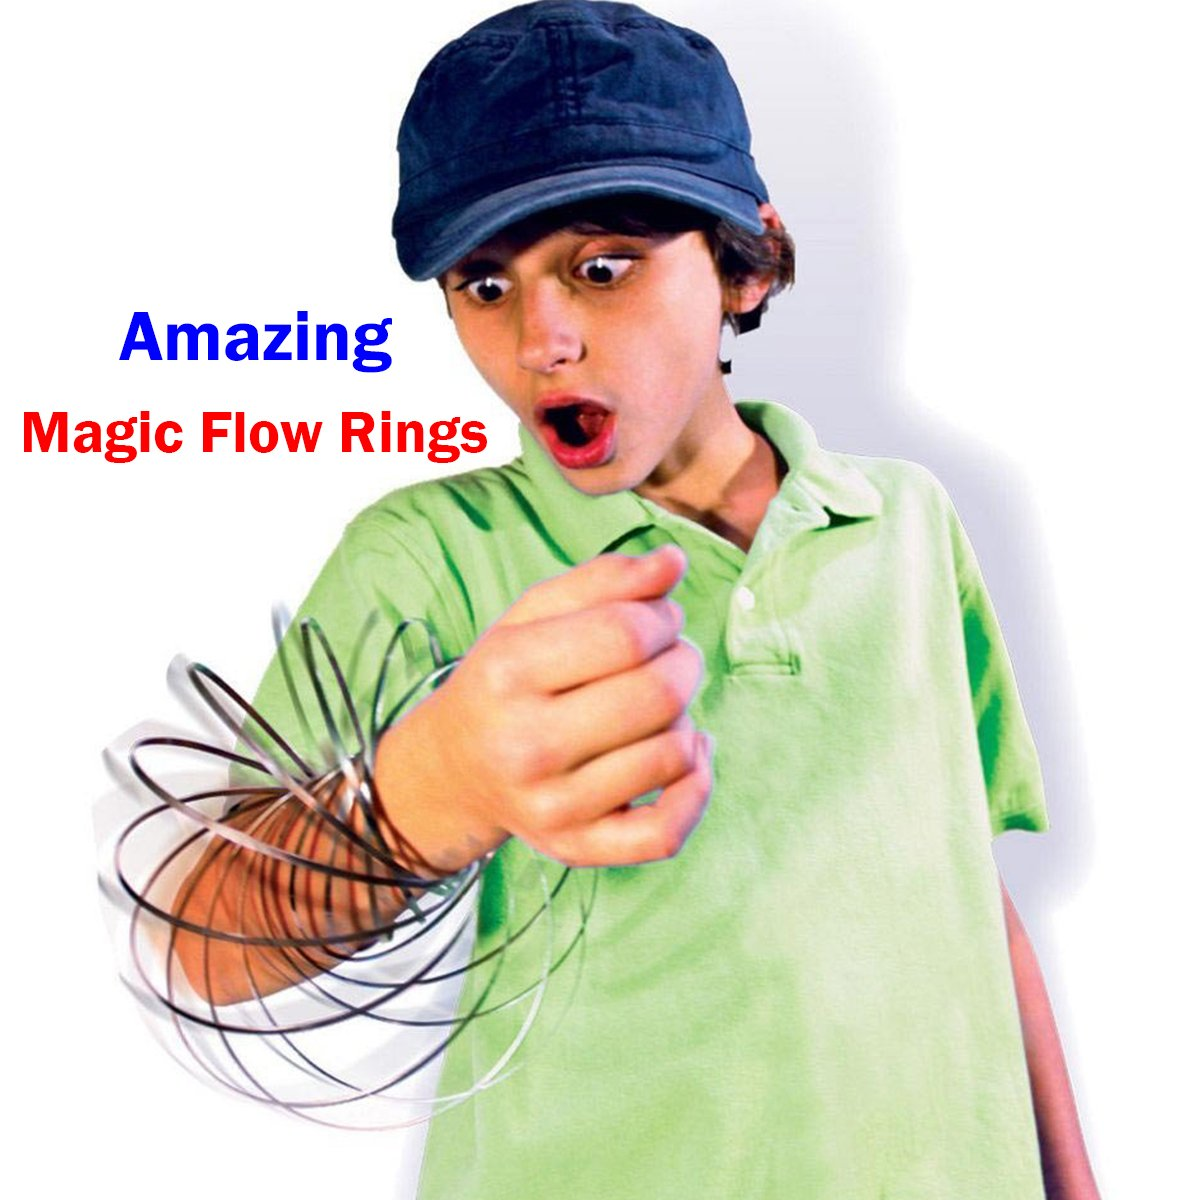 Silver Amazing Magic Flow Rings Kinetic Educational Spring Toy Funny Outdoor Game Intelligent Relax 3D Kinetic Ring Spring Bracelet Stainless Metal Galactic Globe Toy Fit for Kids Boys Girl Adults